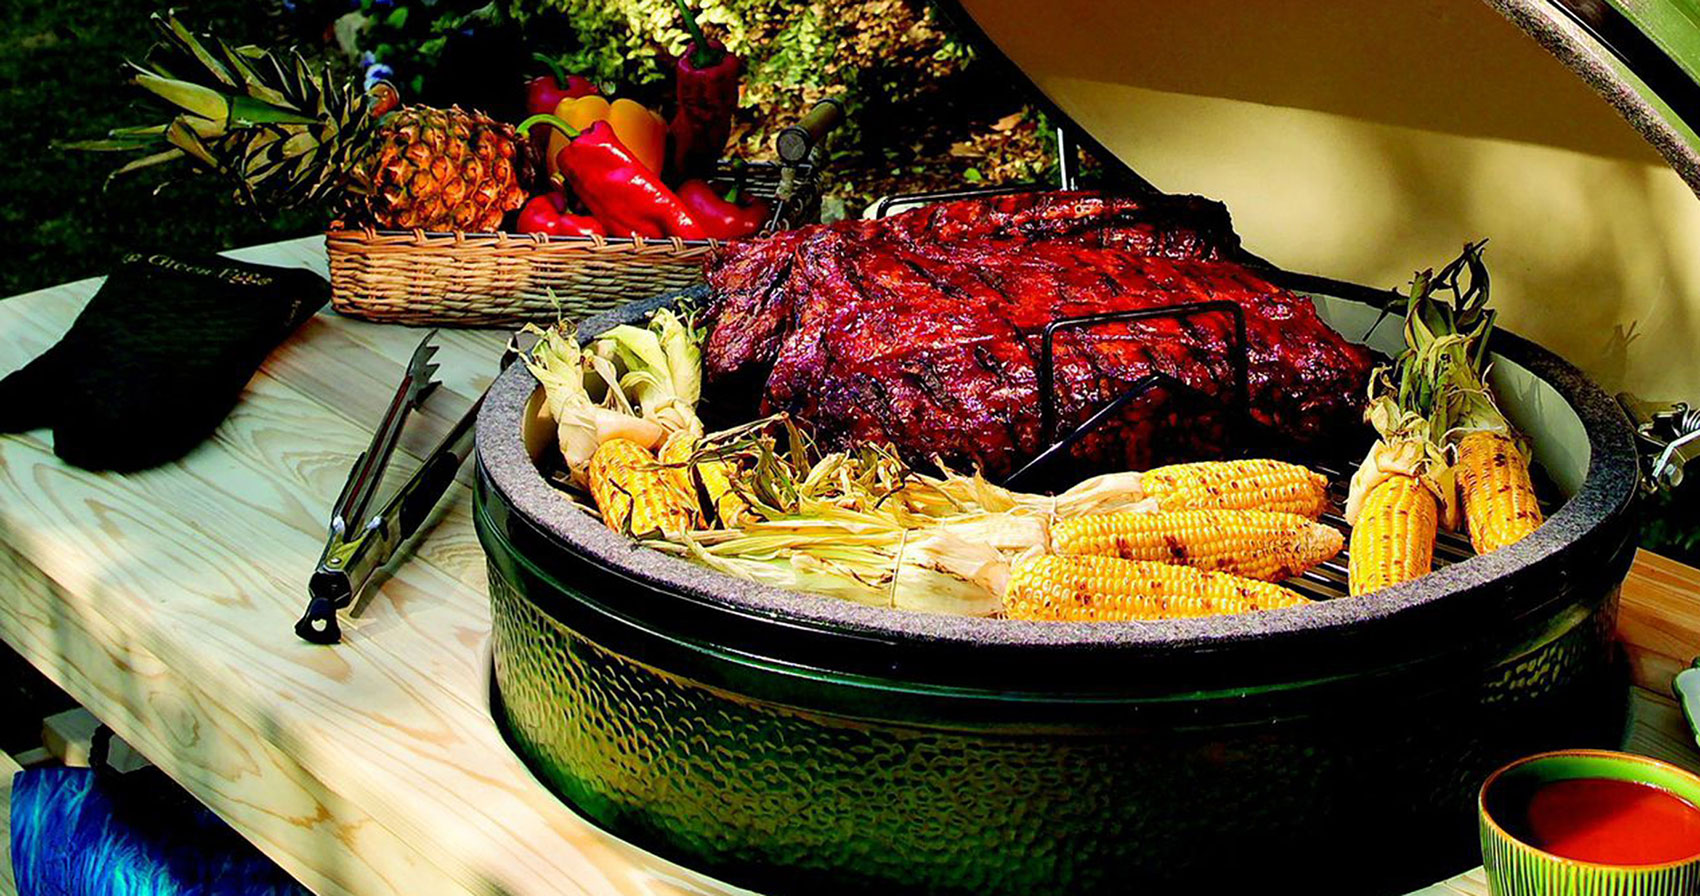 BIG GREEN EGG PRODUCTS PAGE